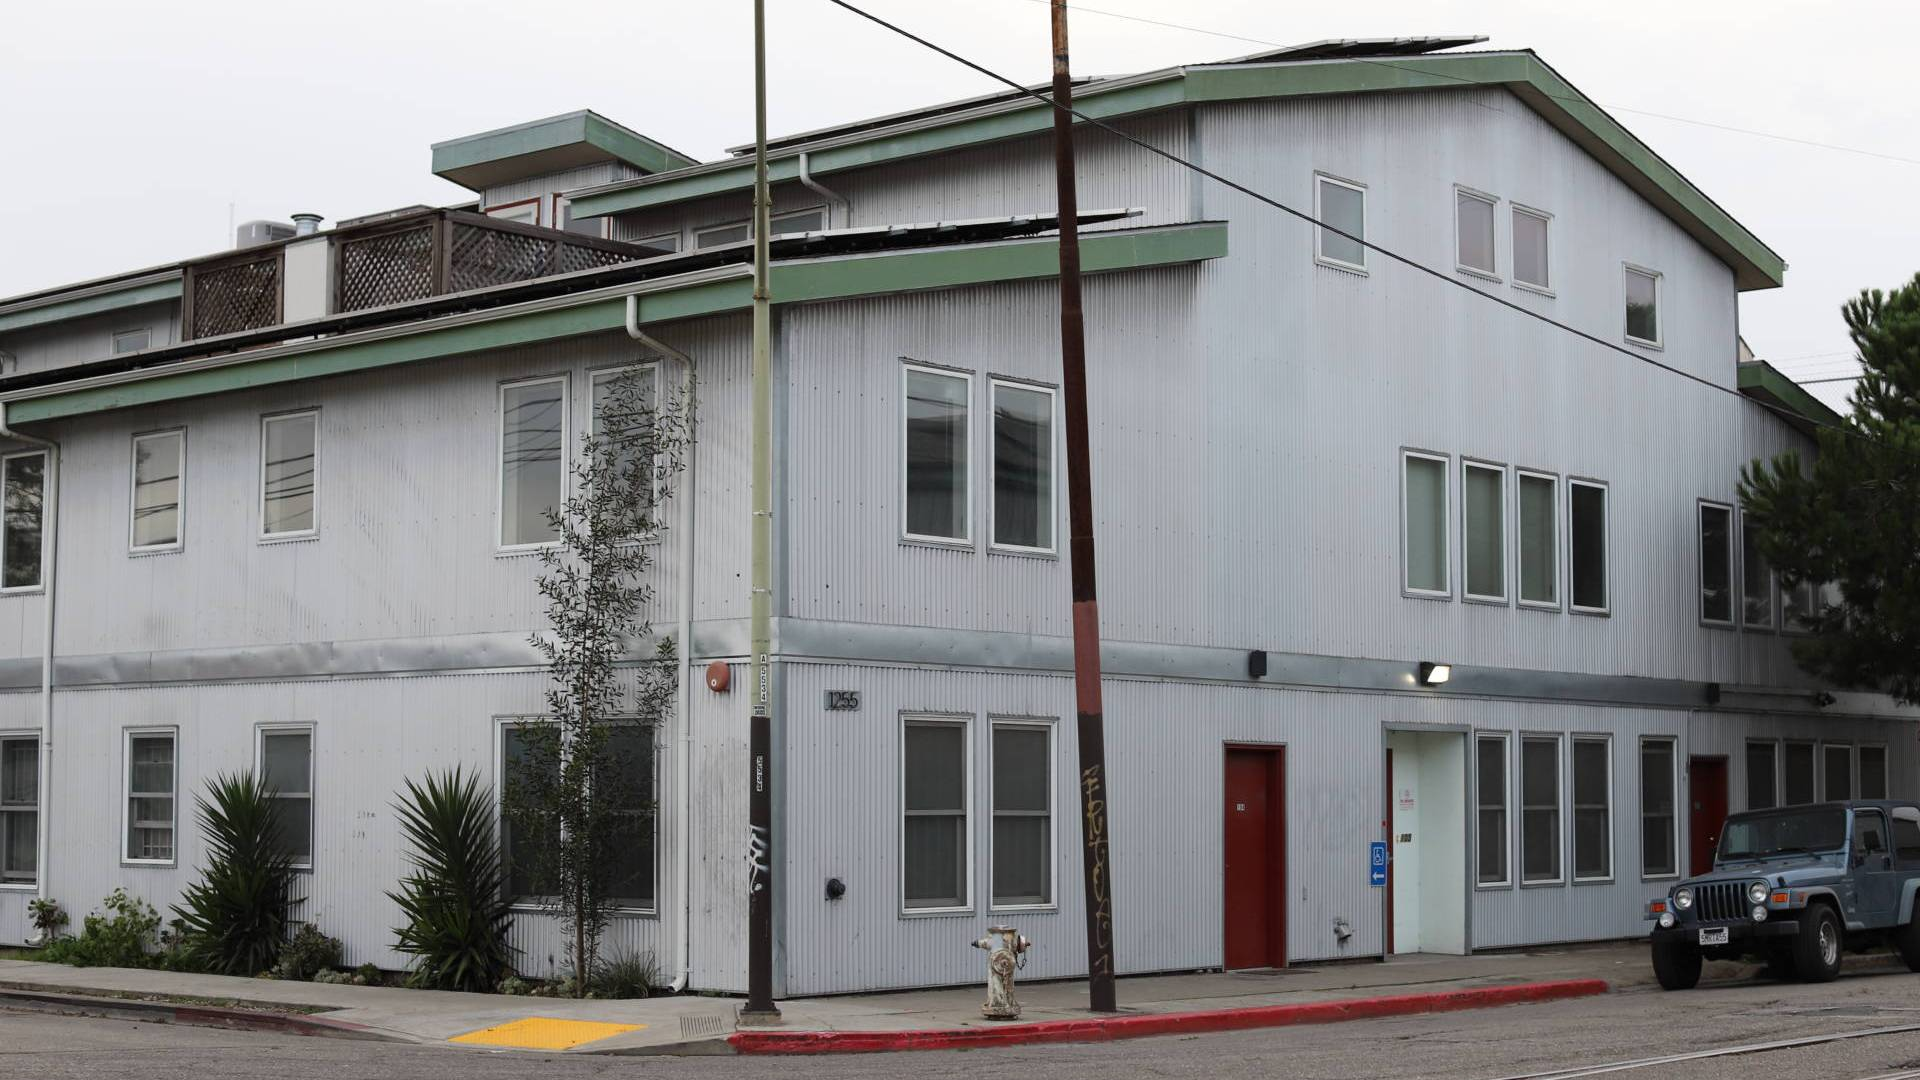 The Northern California Land Trust spent millions creating 11 live-work units and the performance and rehearsal space at what was known as the Noodle Factory.